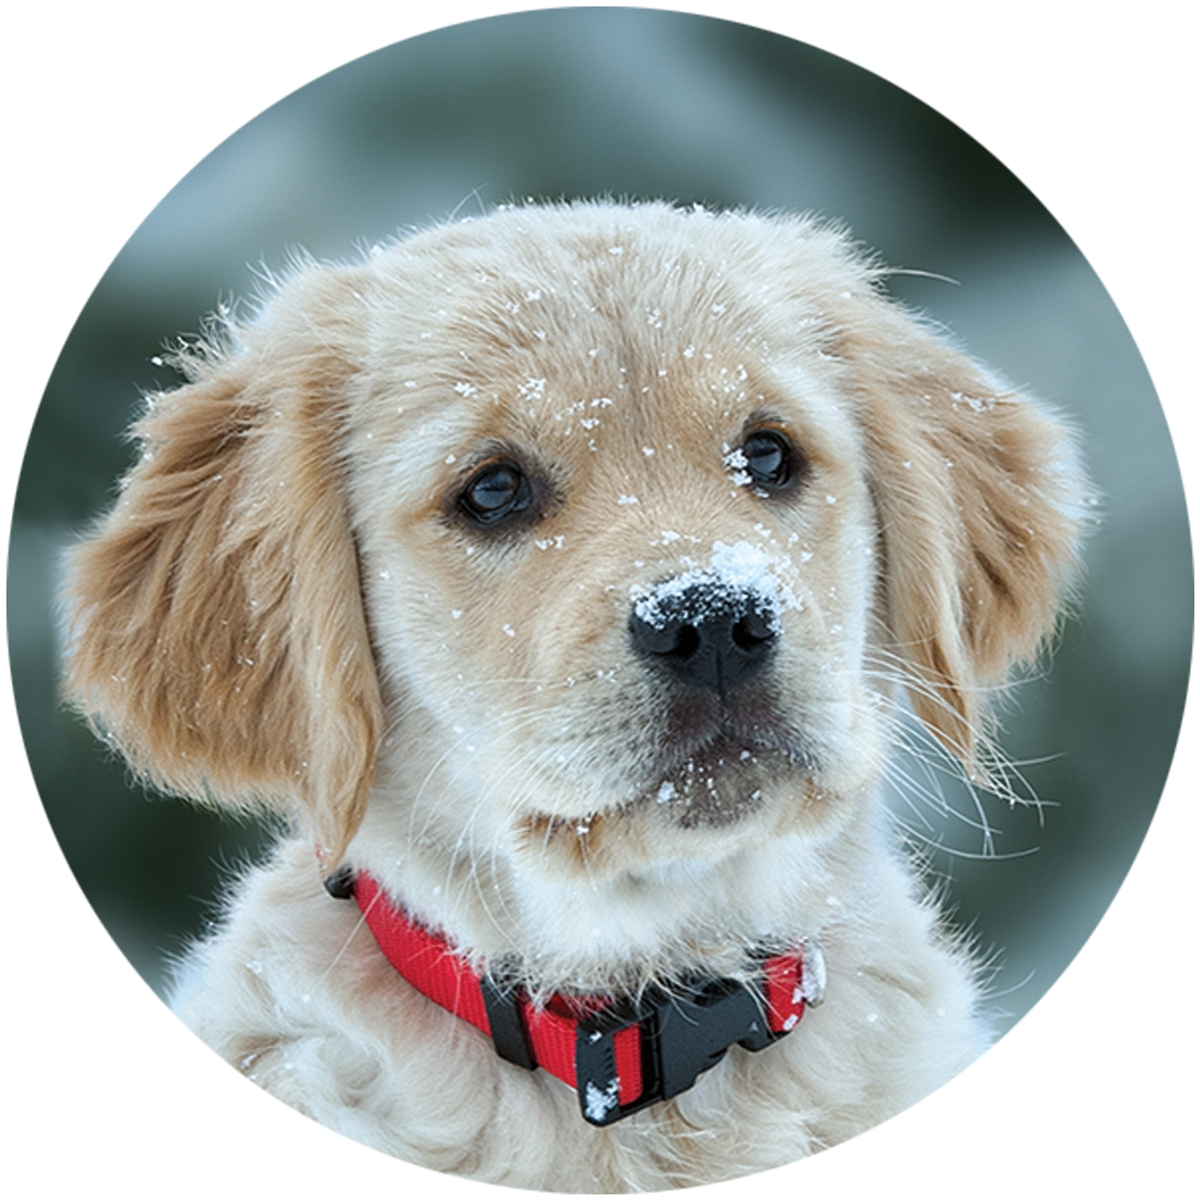 Golden Retriever Puppy in Snow Envelope Seal